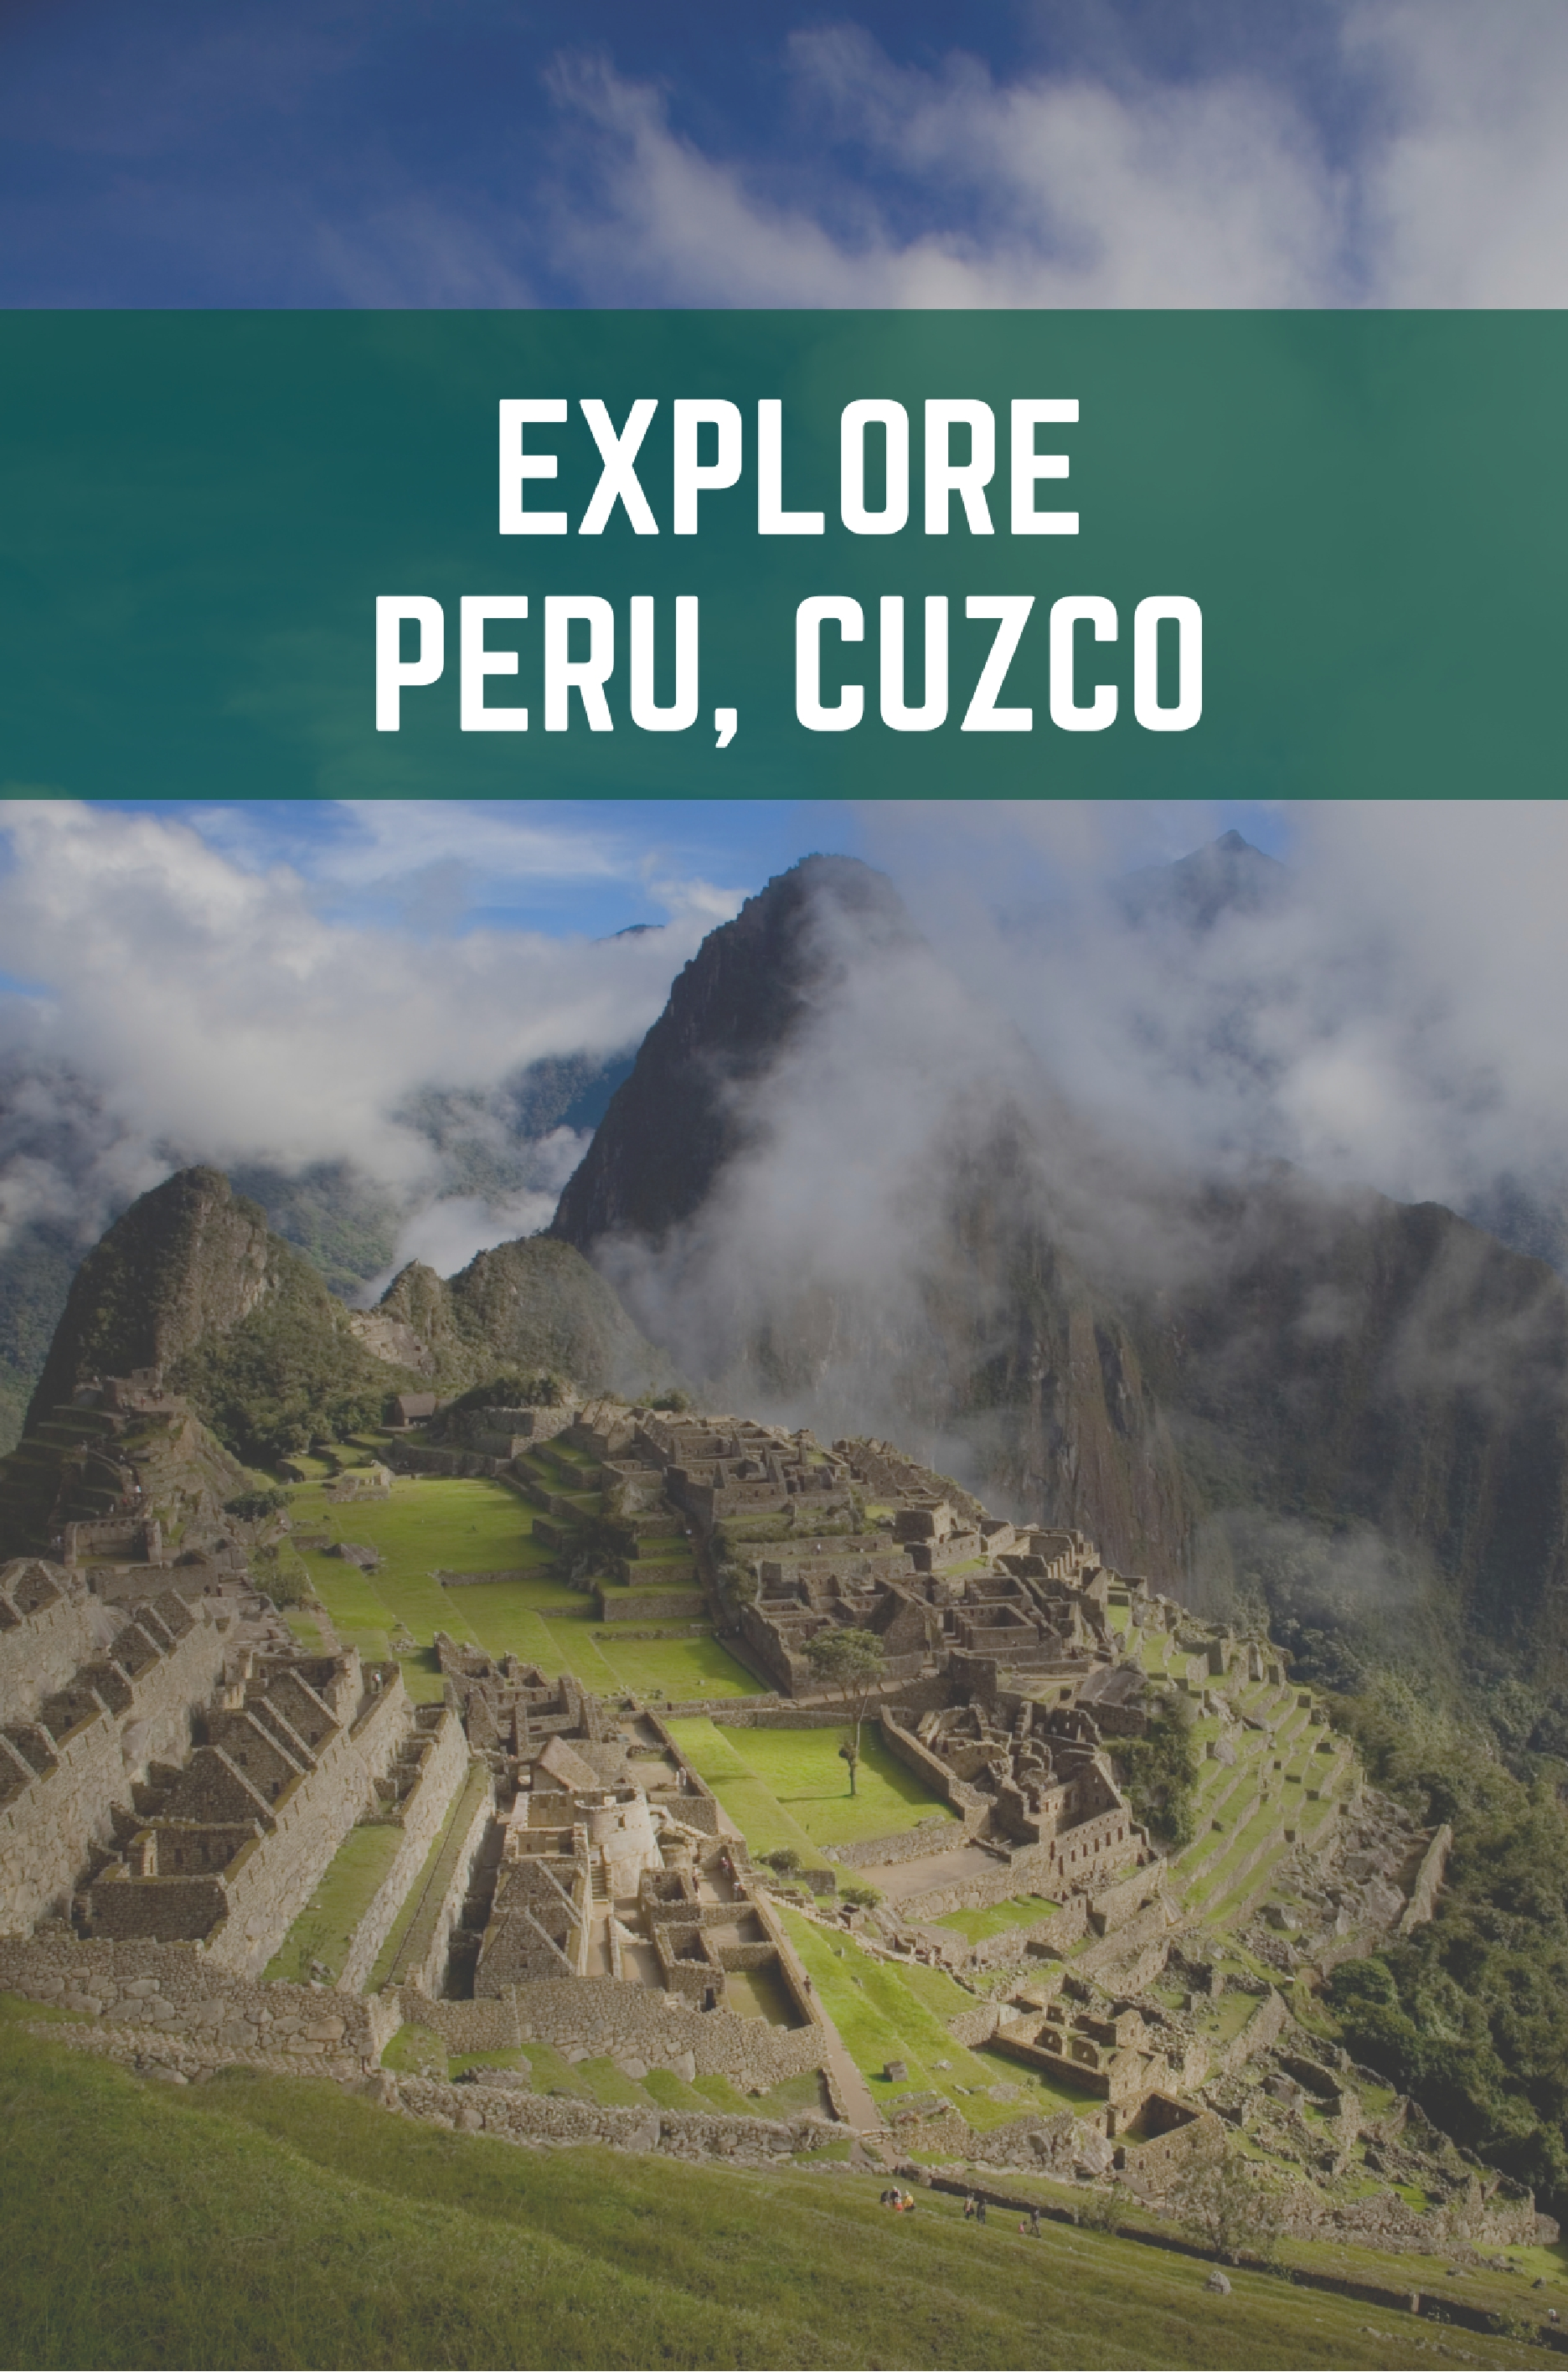 Explore Peru, Cusco